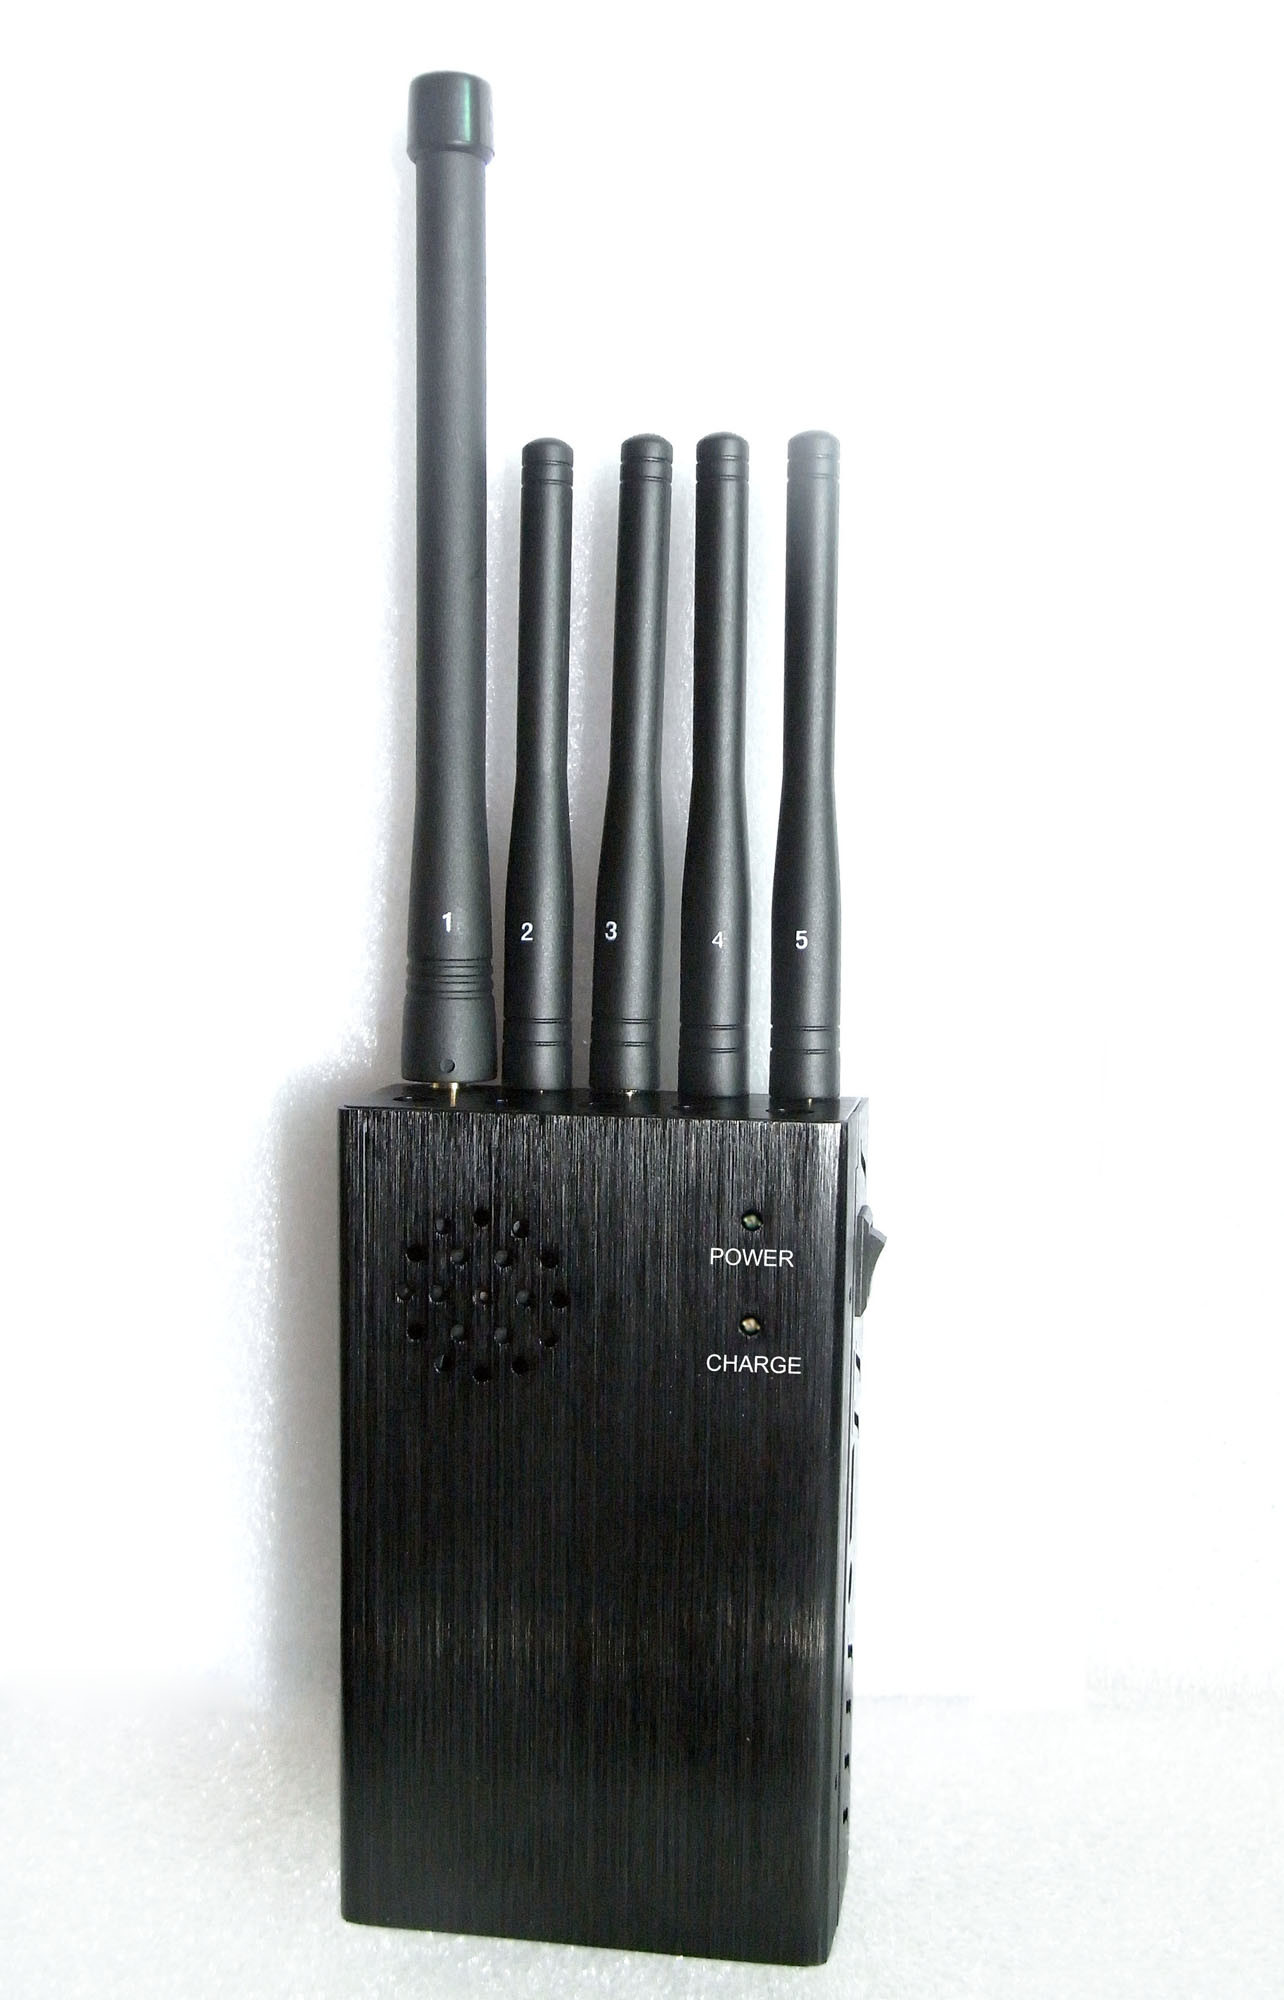 jamming ofdm signal vault - China New 5 Antenna 3G 4glte Wimax Wireless Signal Jammers, High Power Handheld Portable Cellphone Wireless Jammer - China 5 Band Signal Blockers, Five Antennas Jammers